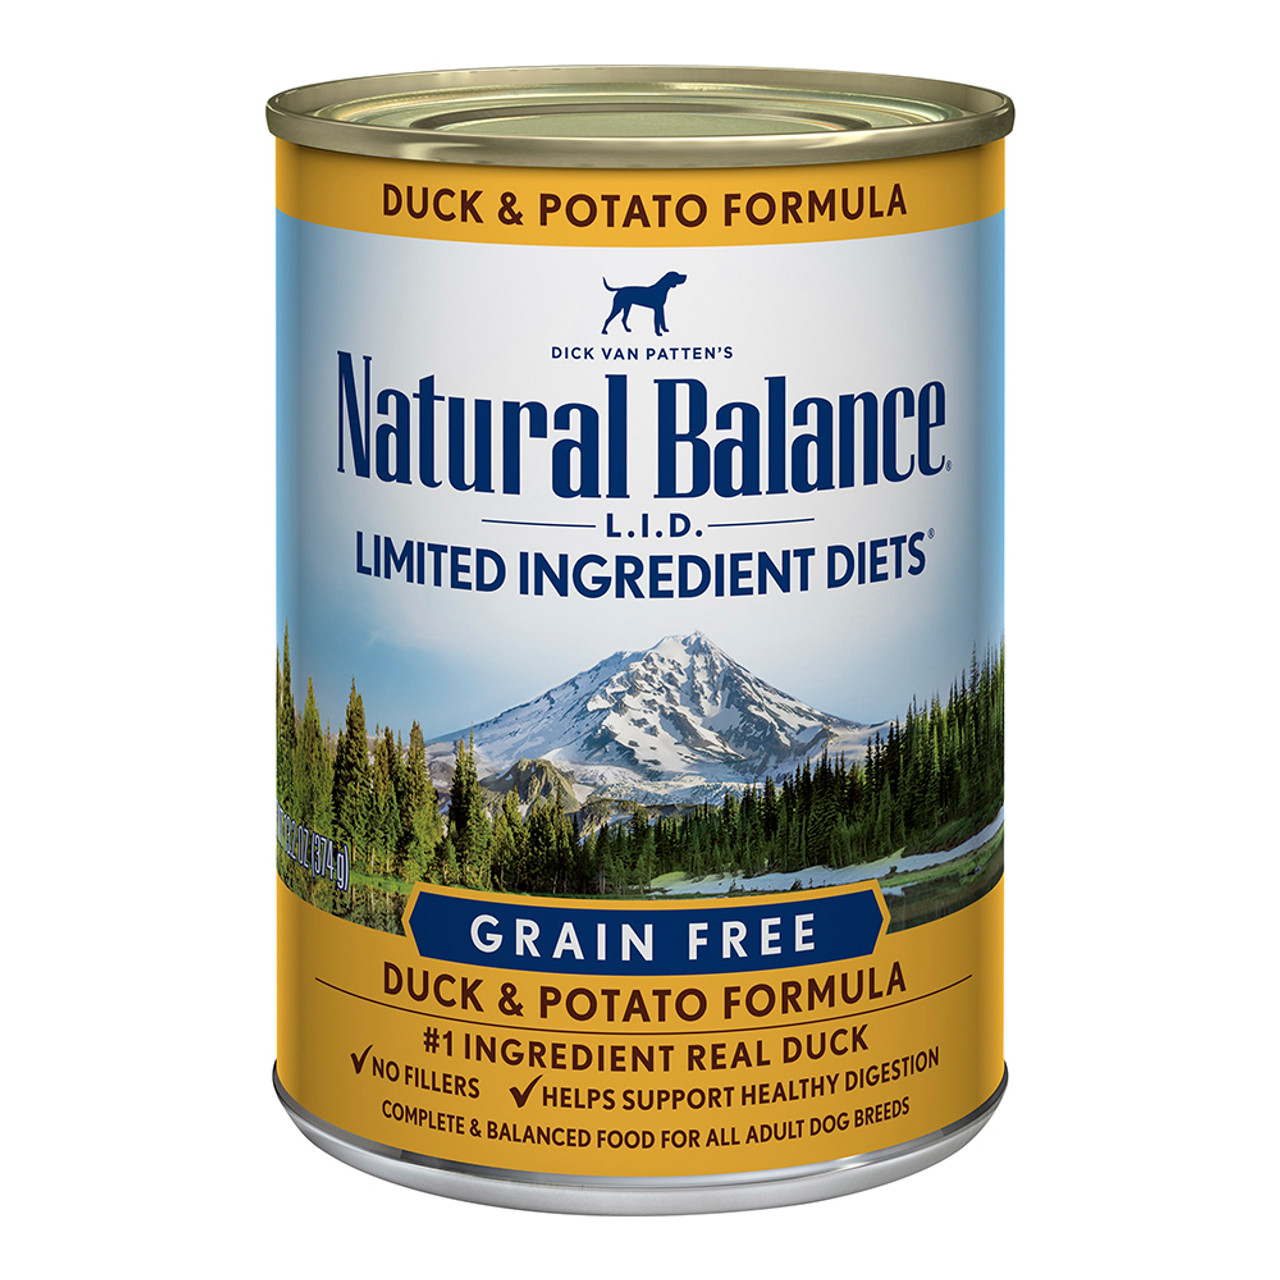 Natural Balance Limited Ingredient Diets Duck & Potato Formula Canned Dog Food